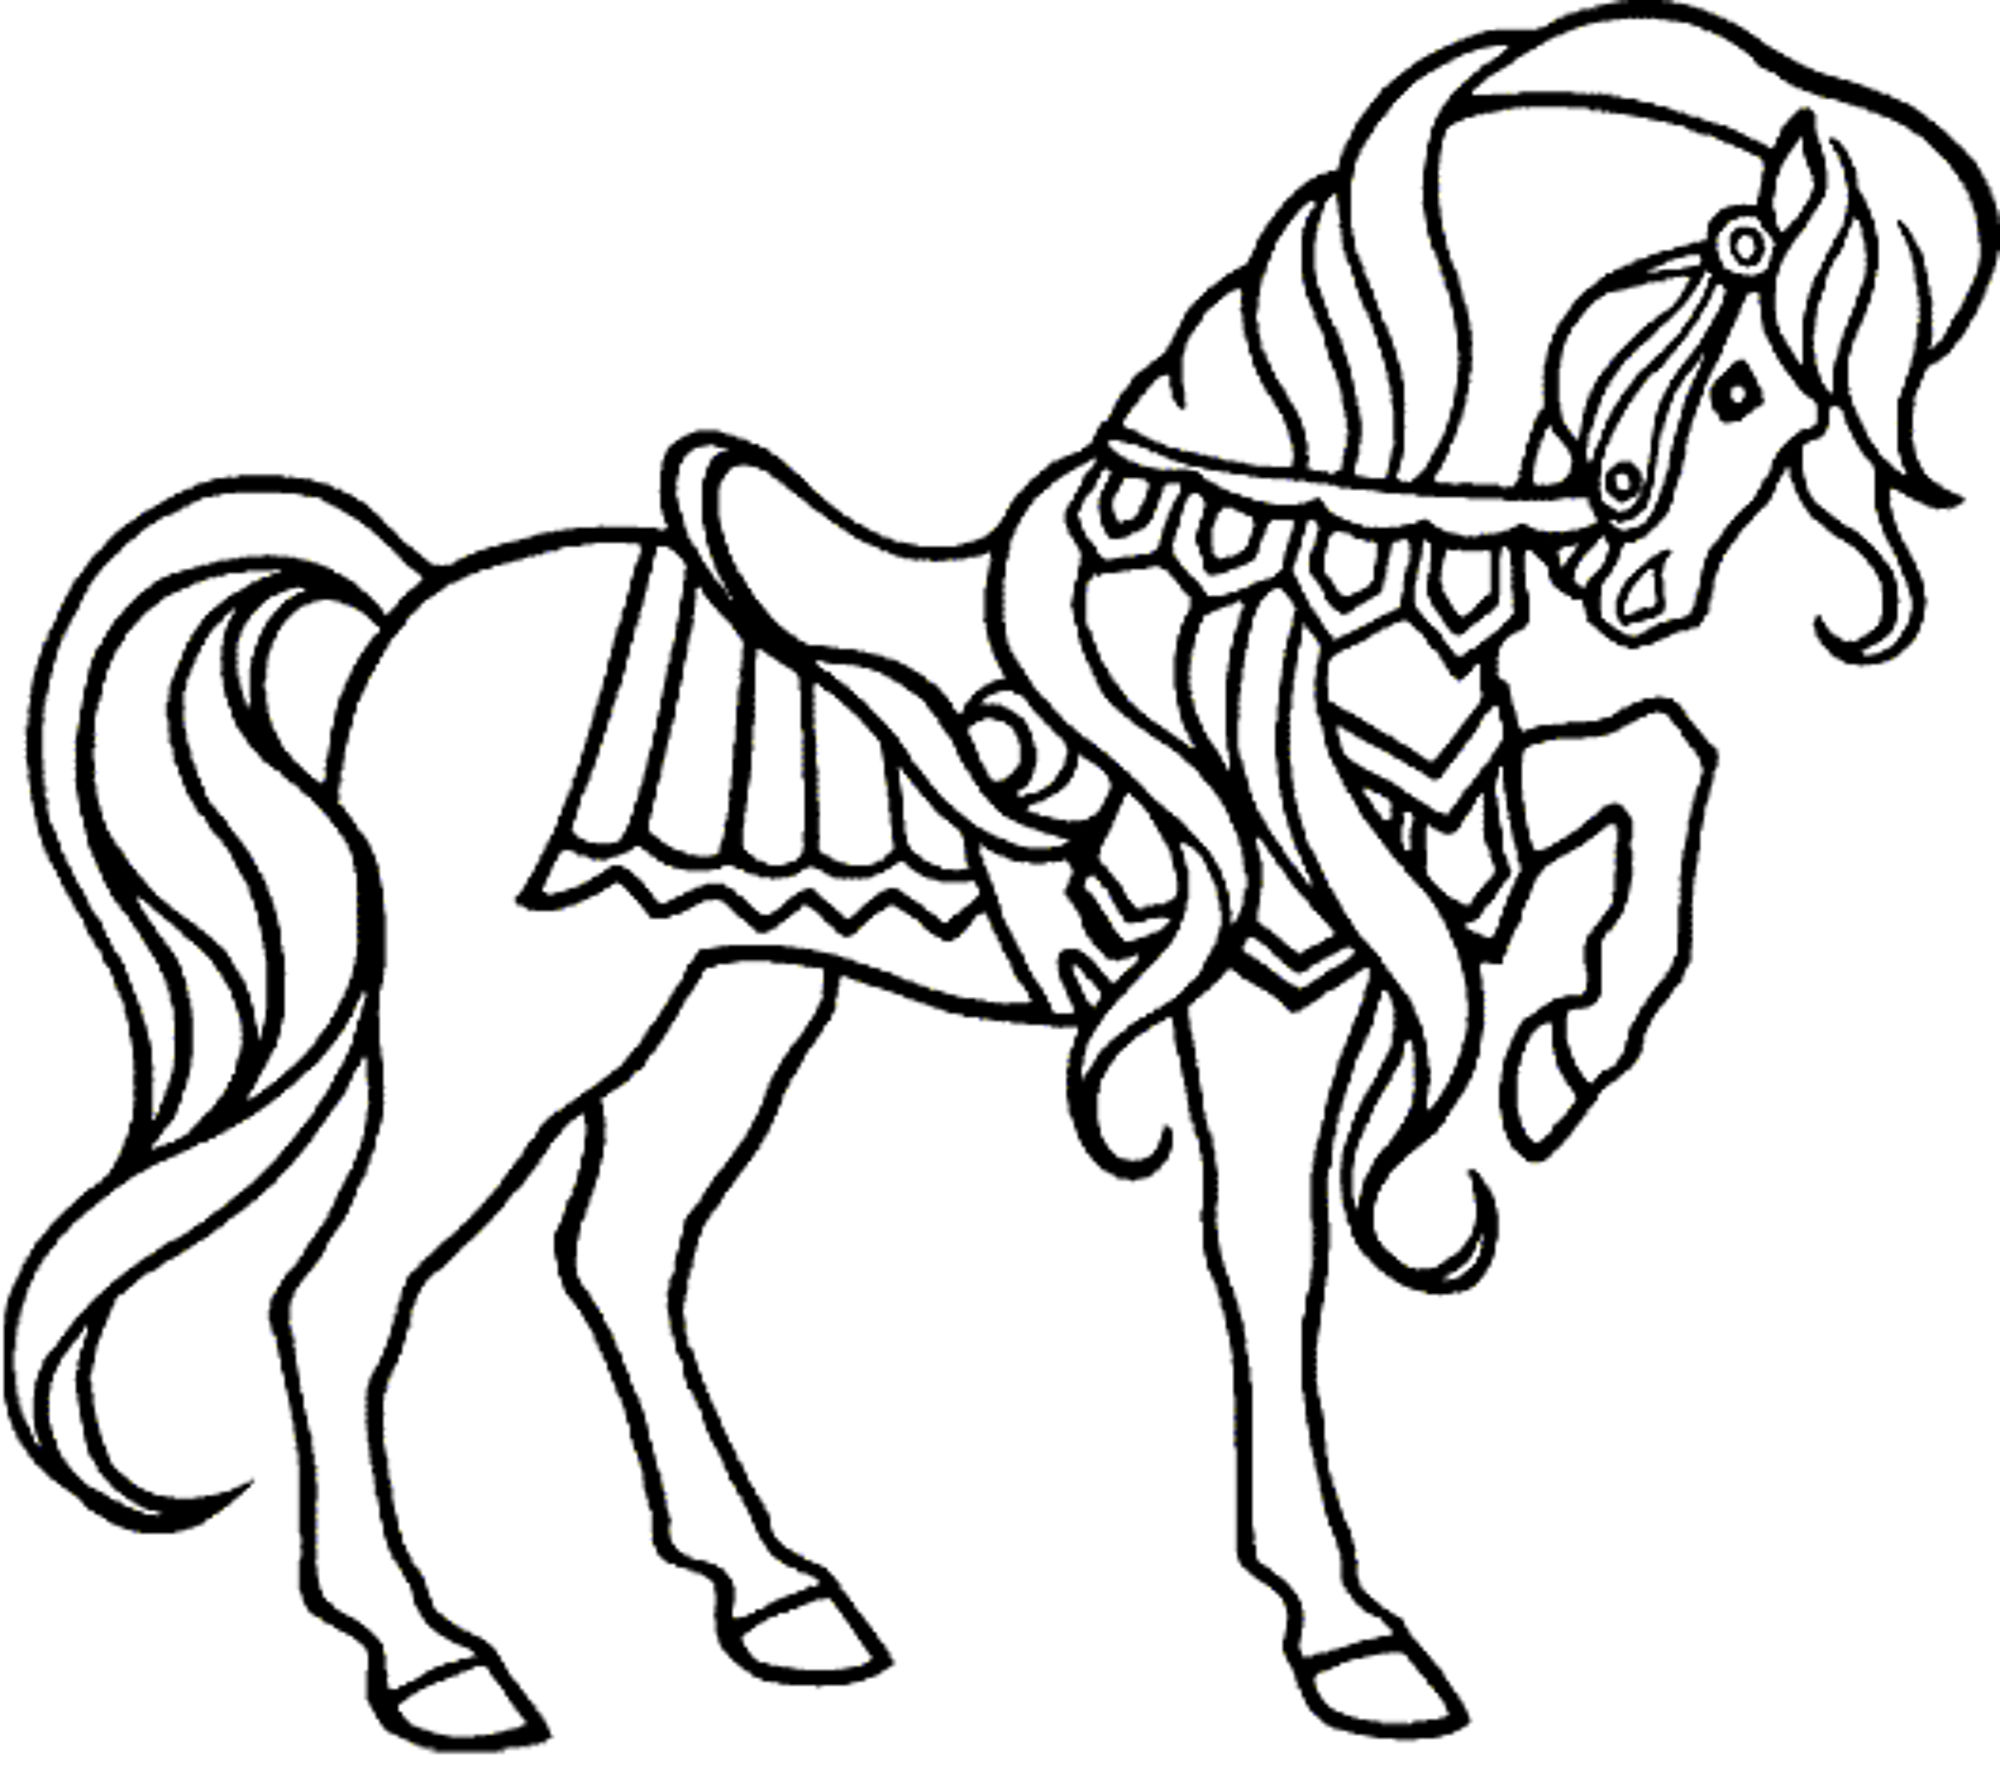 Kids Horse Drawing at GetDrawings.com | Free for personal use Kids ...